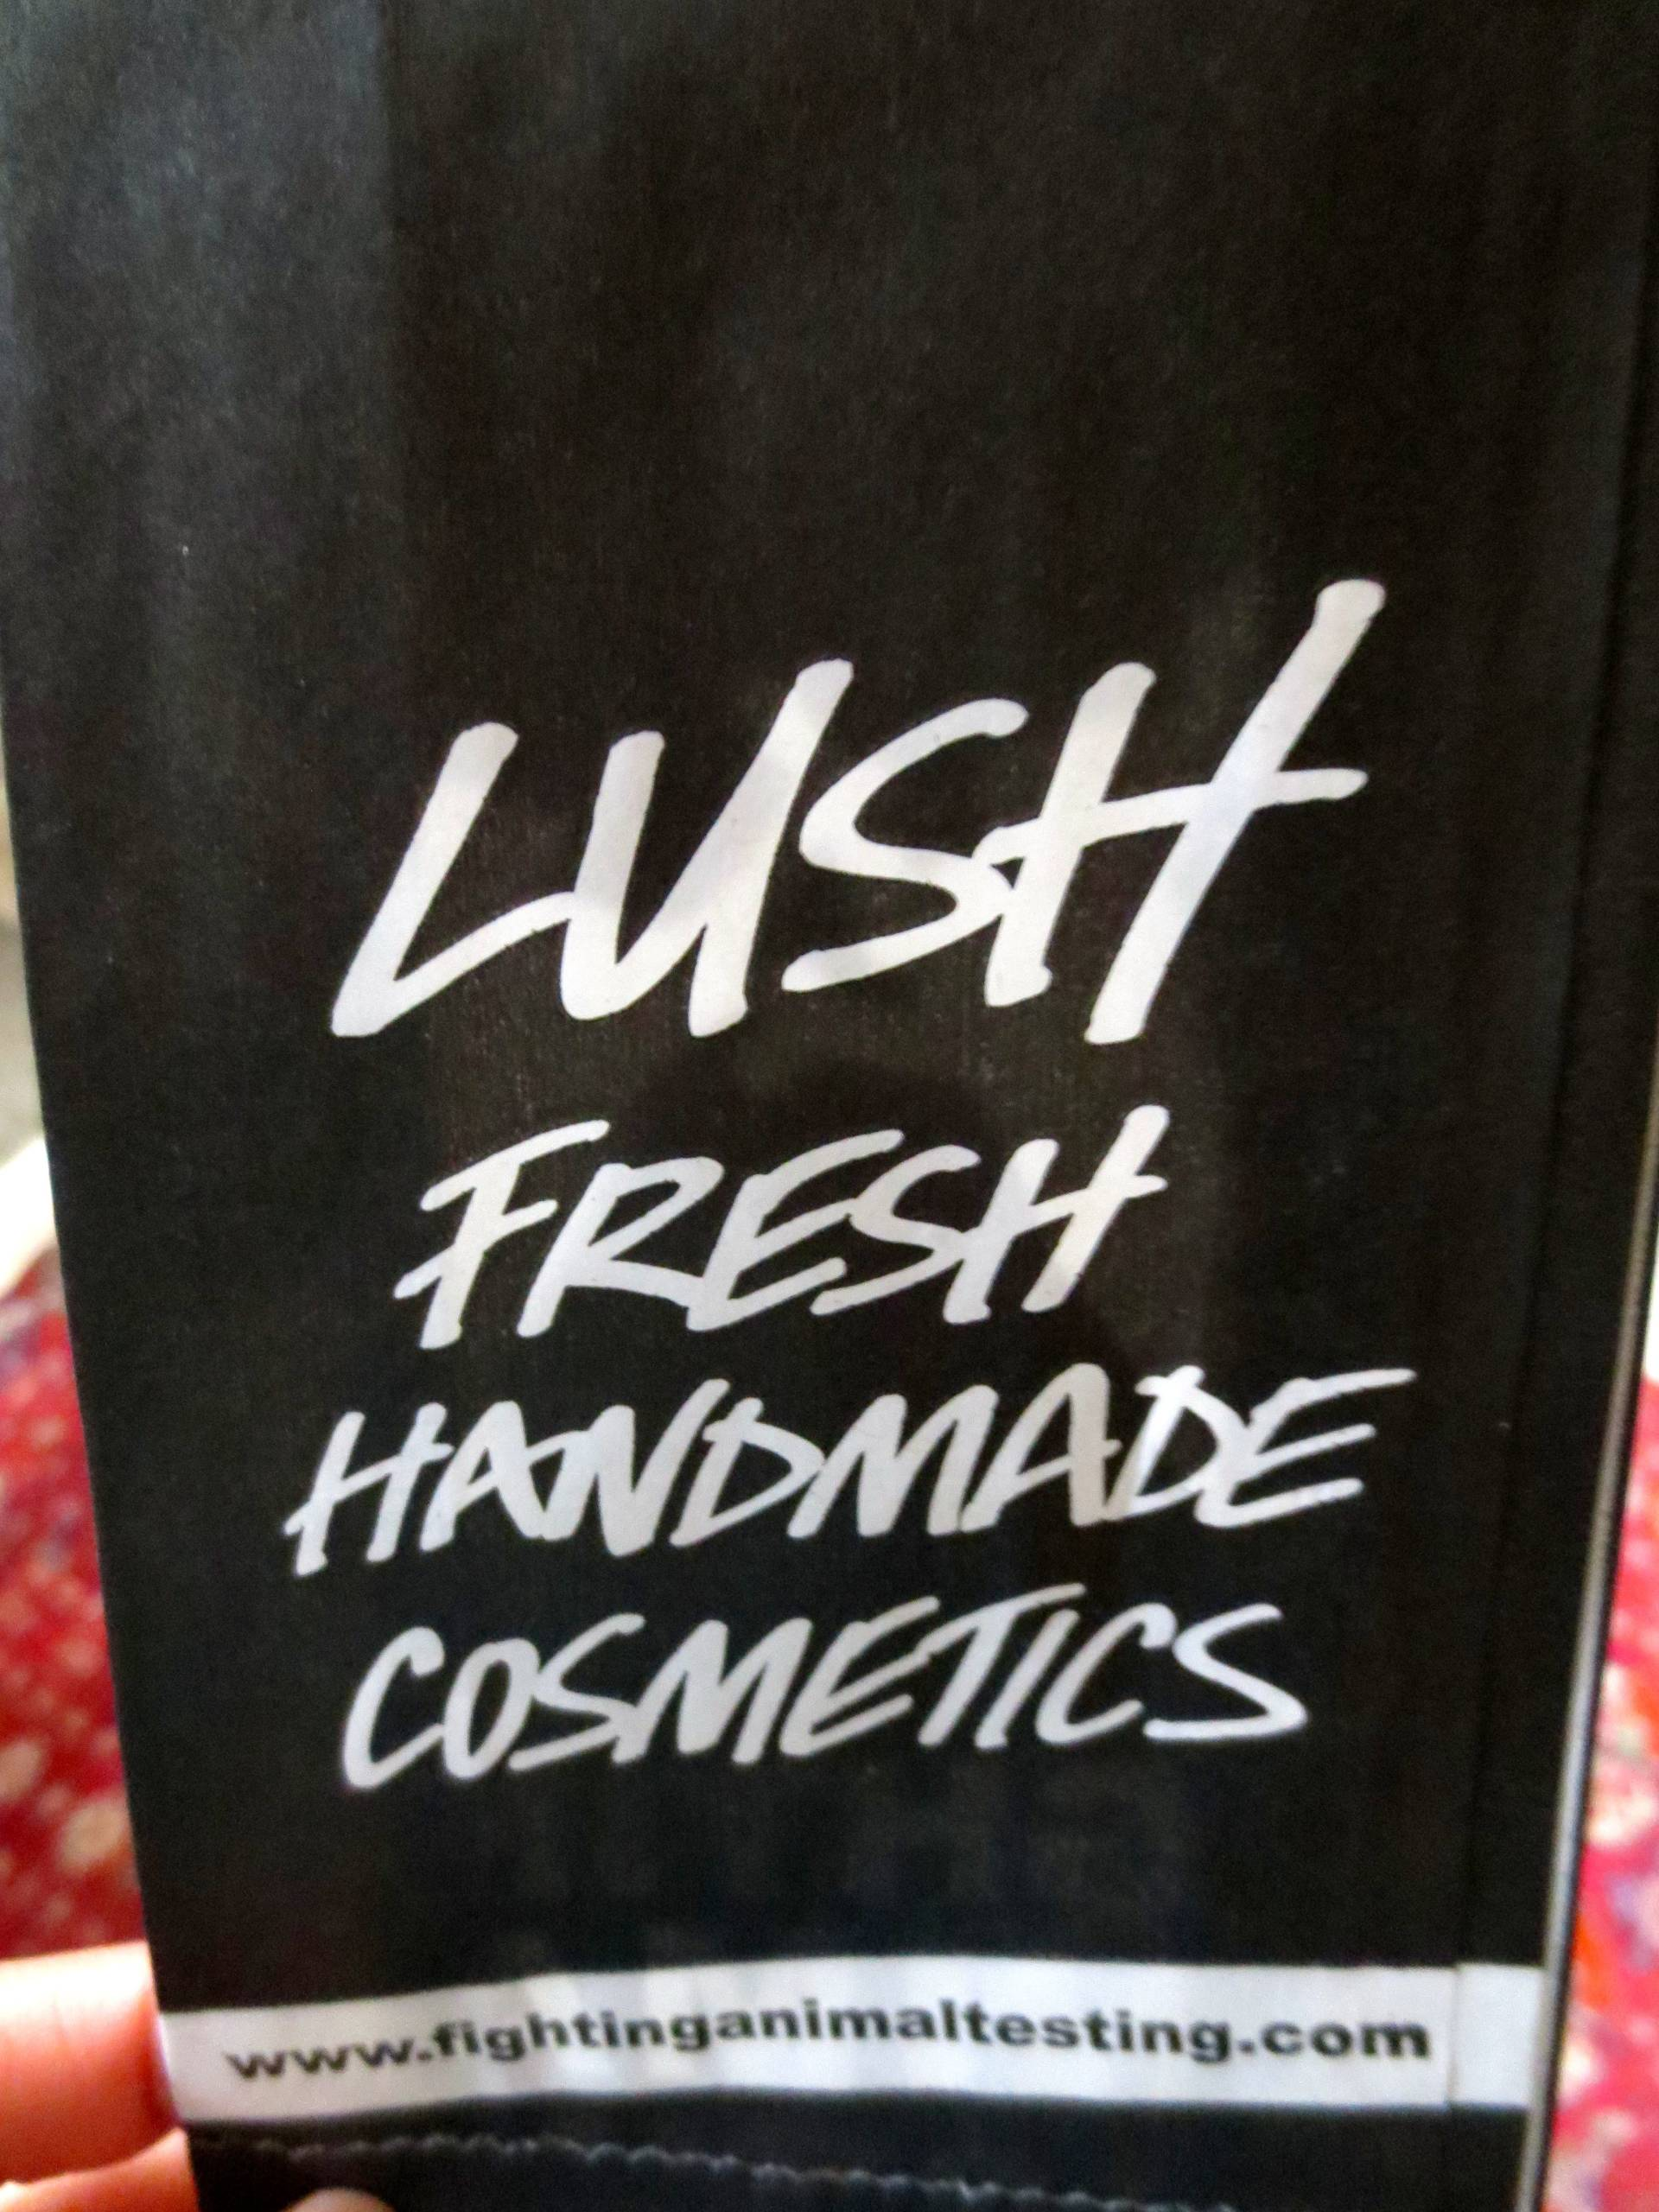 I like what you stand for, Lush